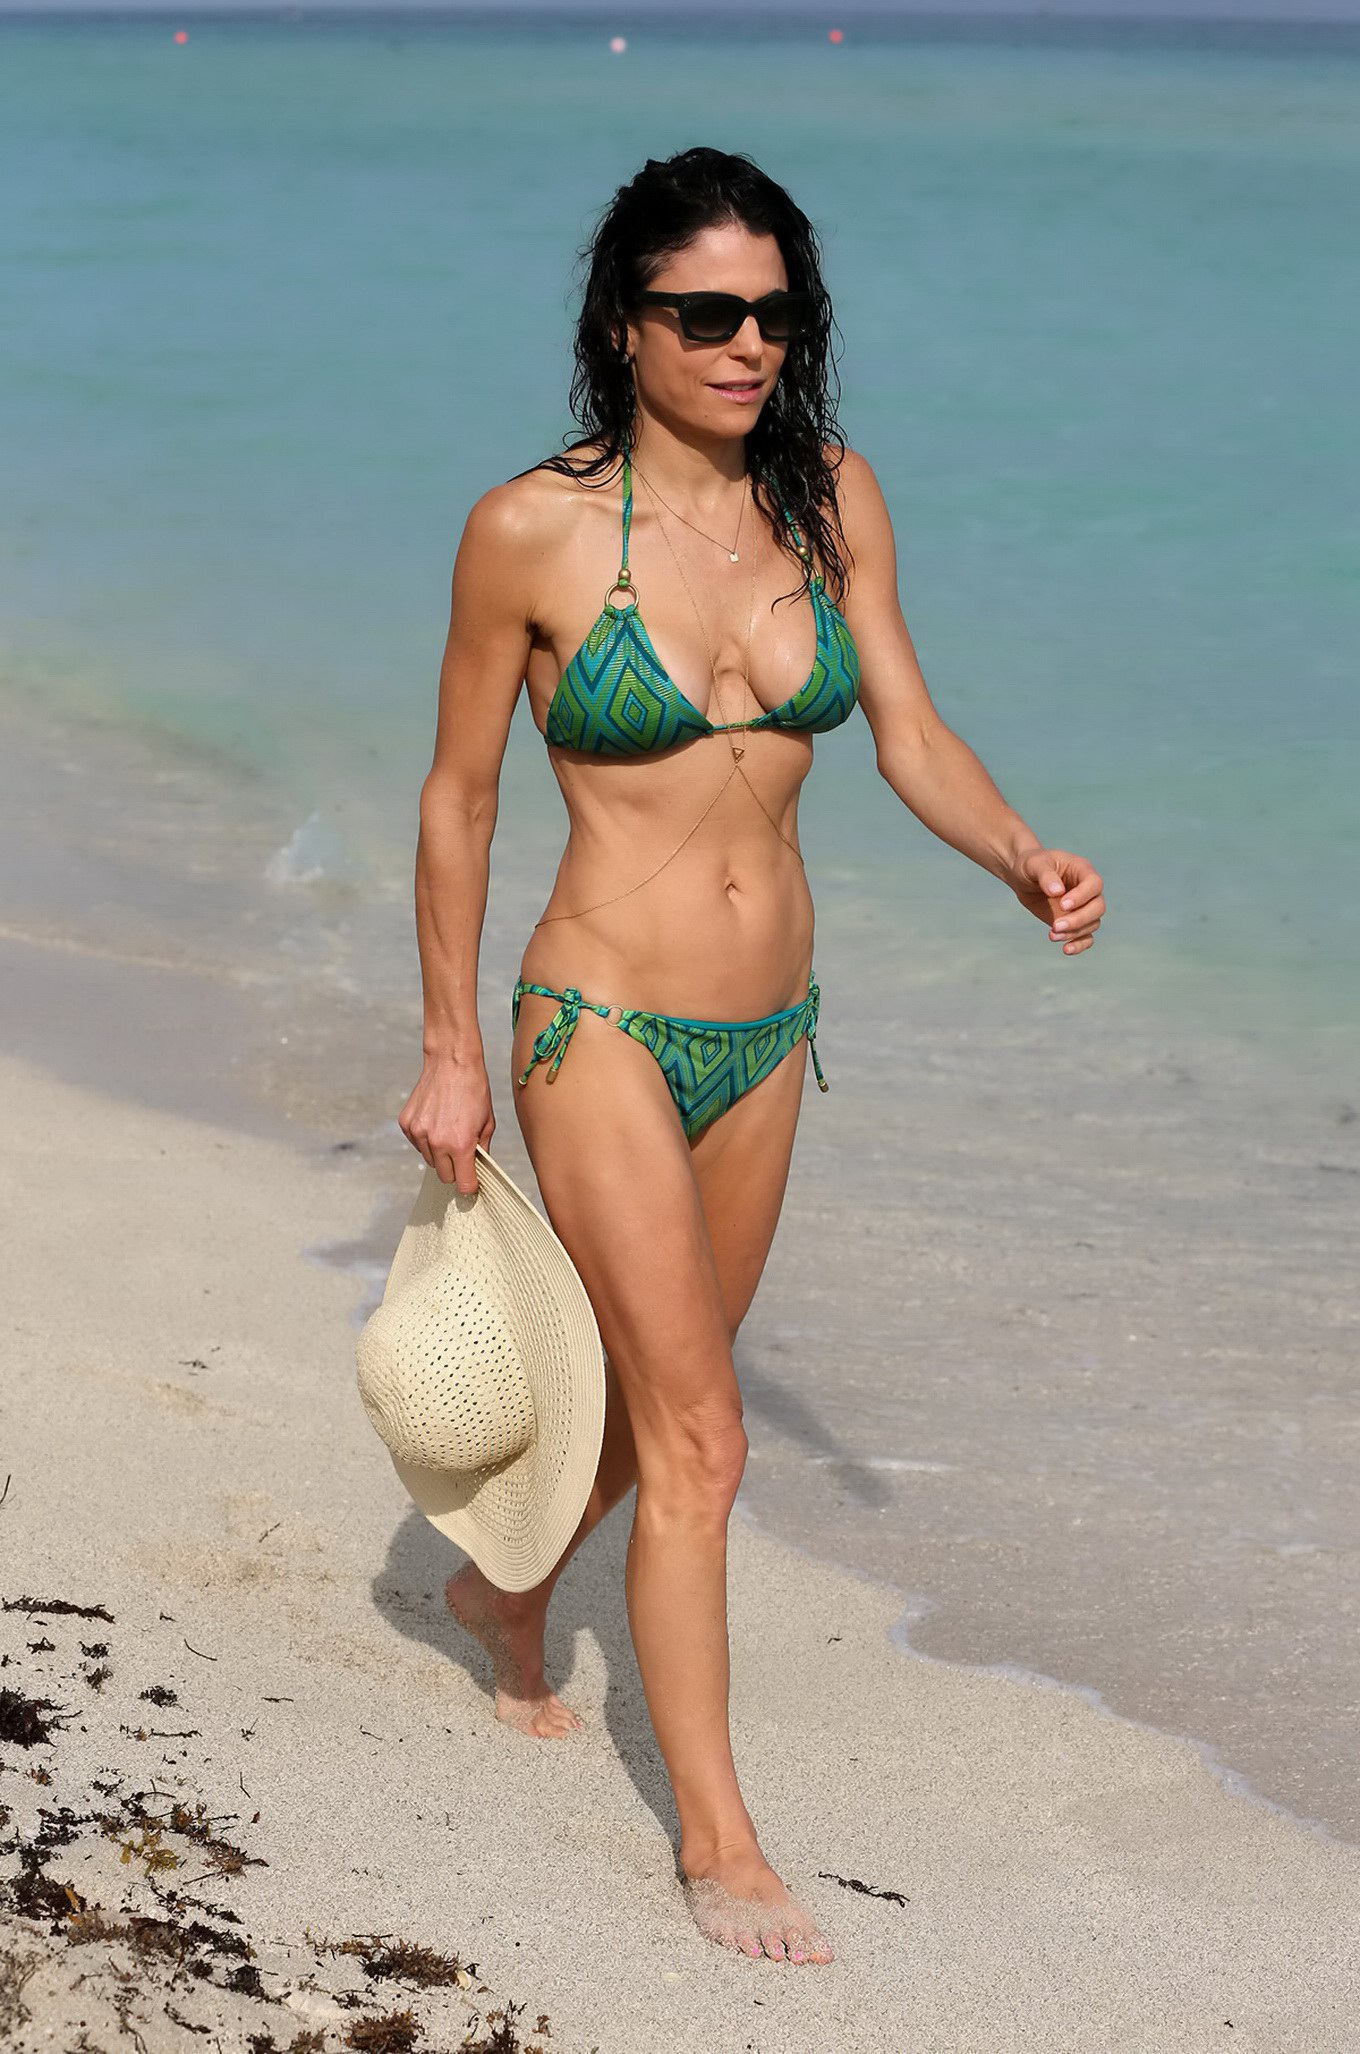 frankel shows off her hot body in a tiny green bikini at miami beach